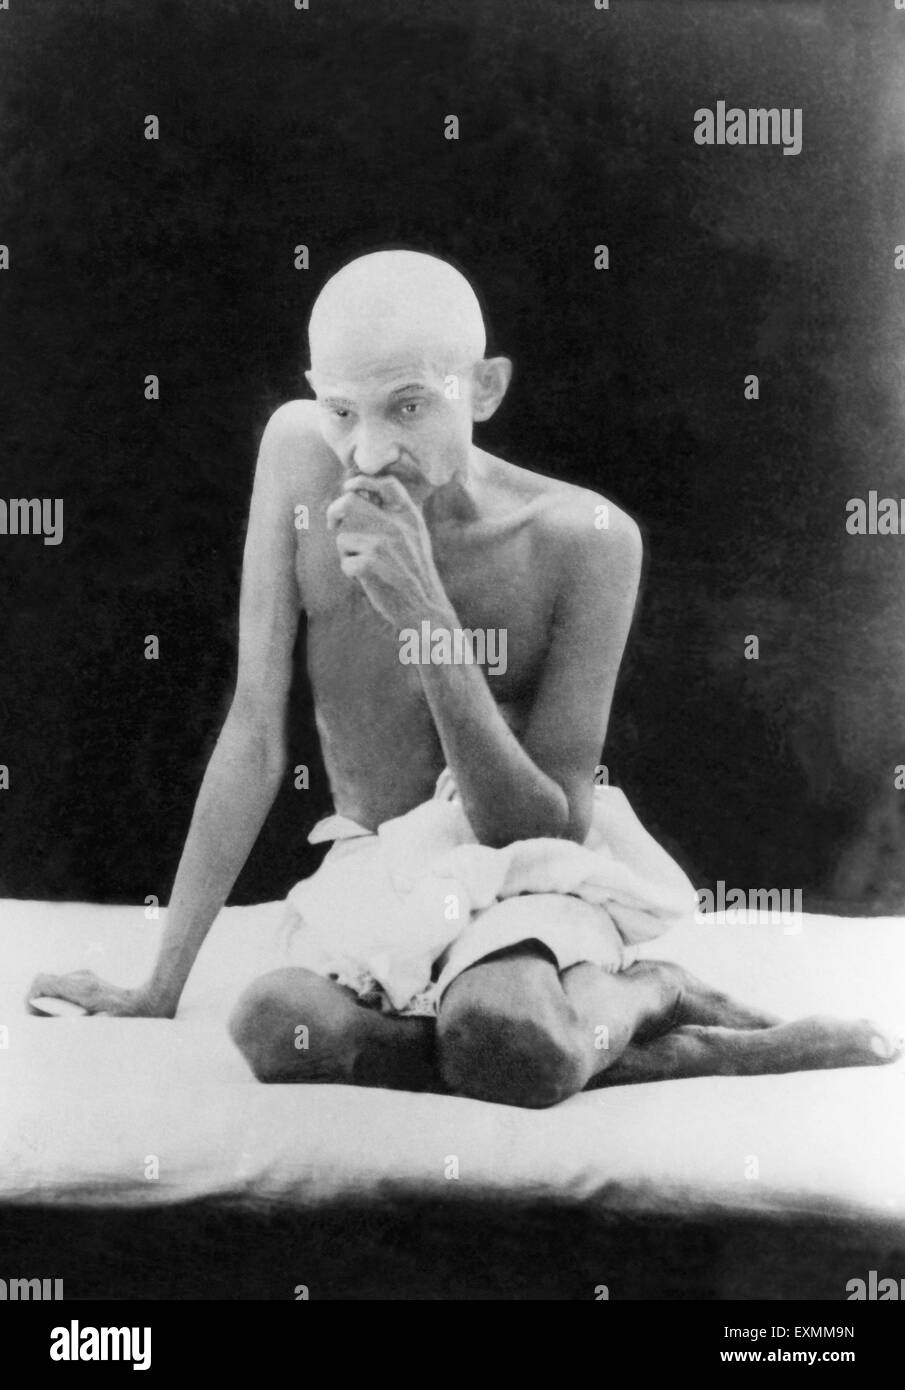 Mahatma Gandhi ; with shaved head in characteristic pose ; India NO MR - Stock Image